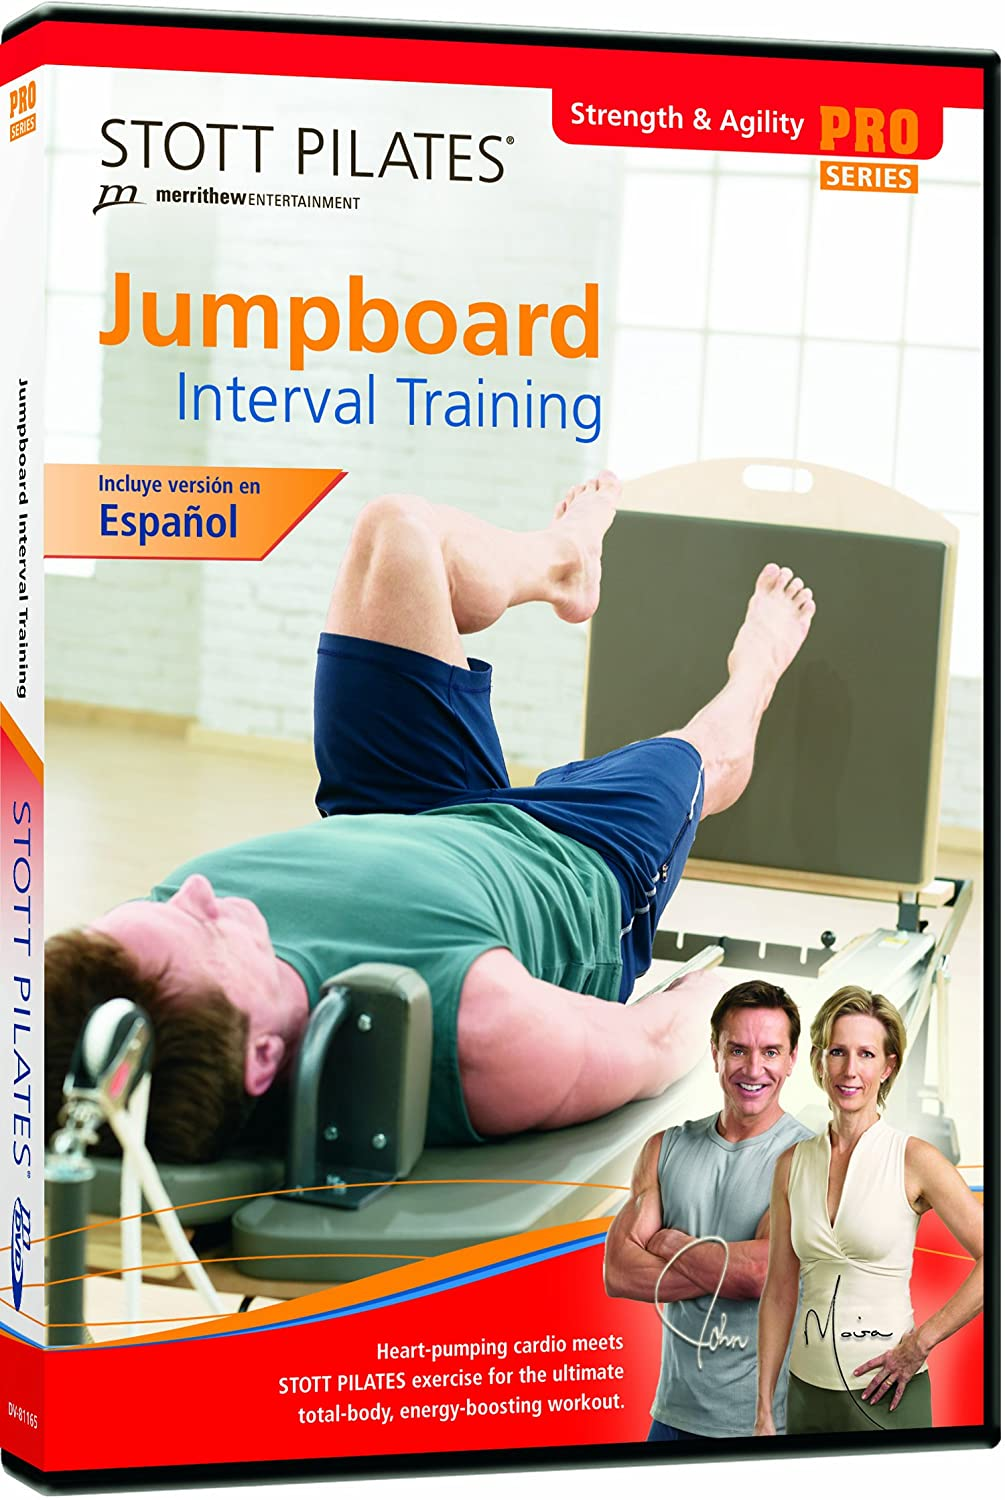 Stott Pilates: Jumpboard Interval Training DV-81165 Movie Fitness/Self-Help